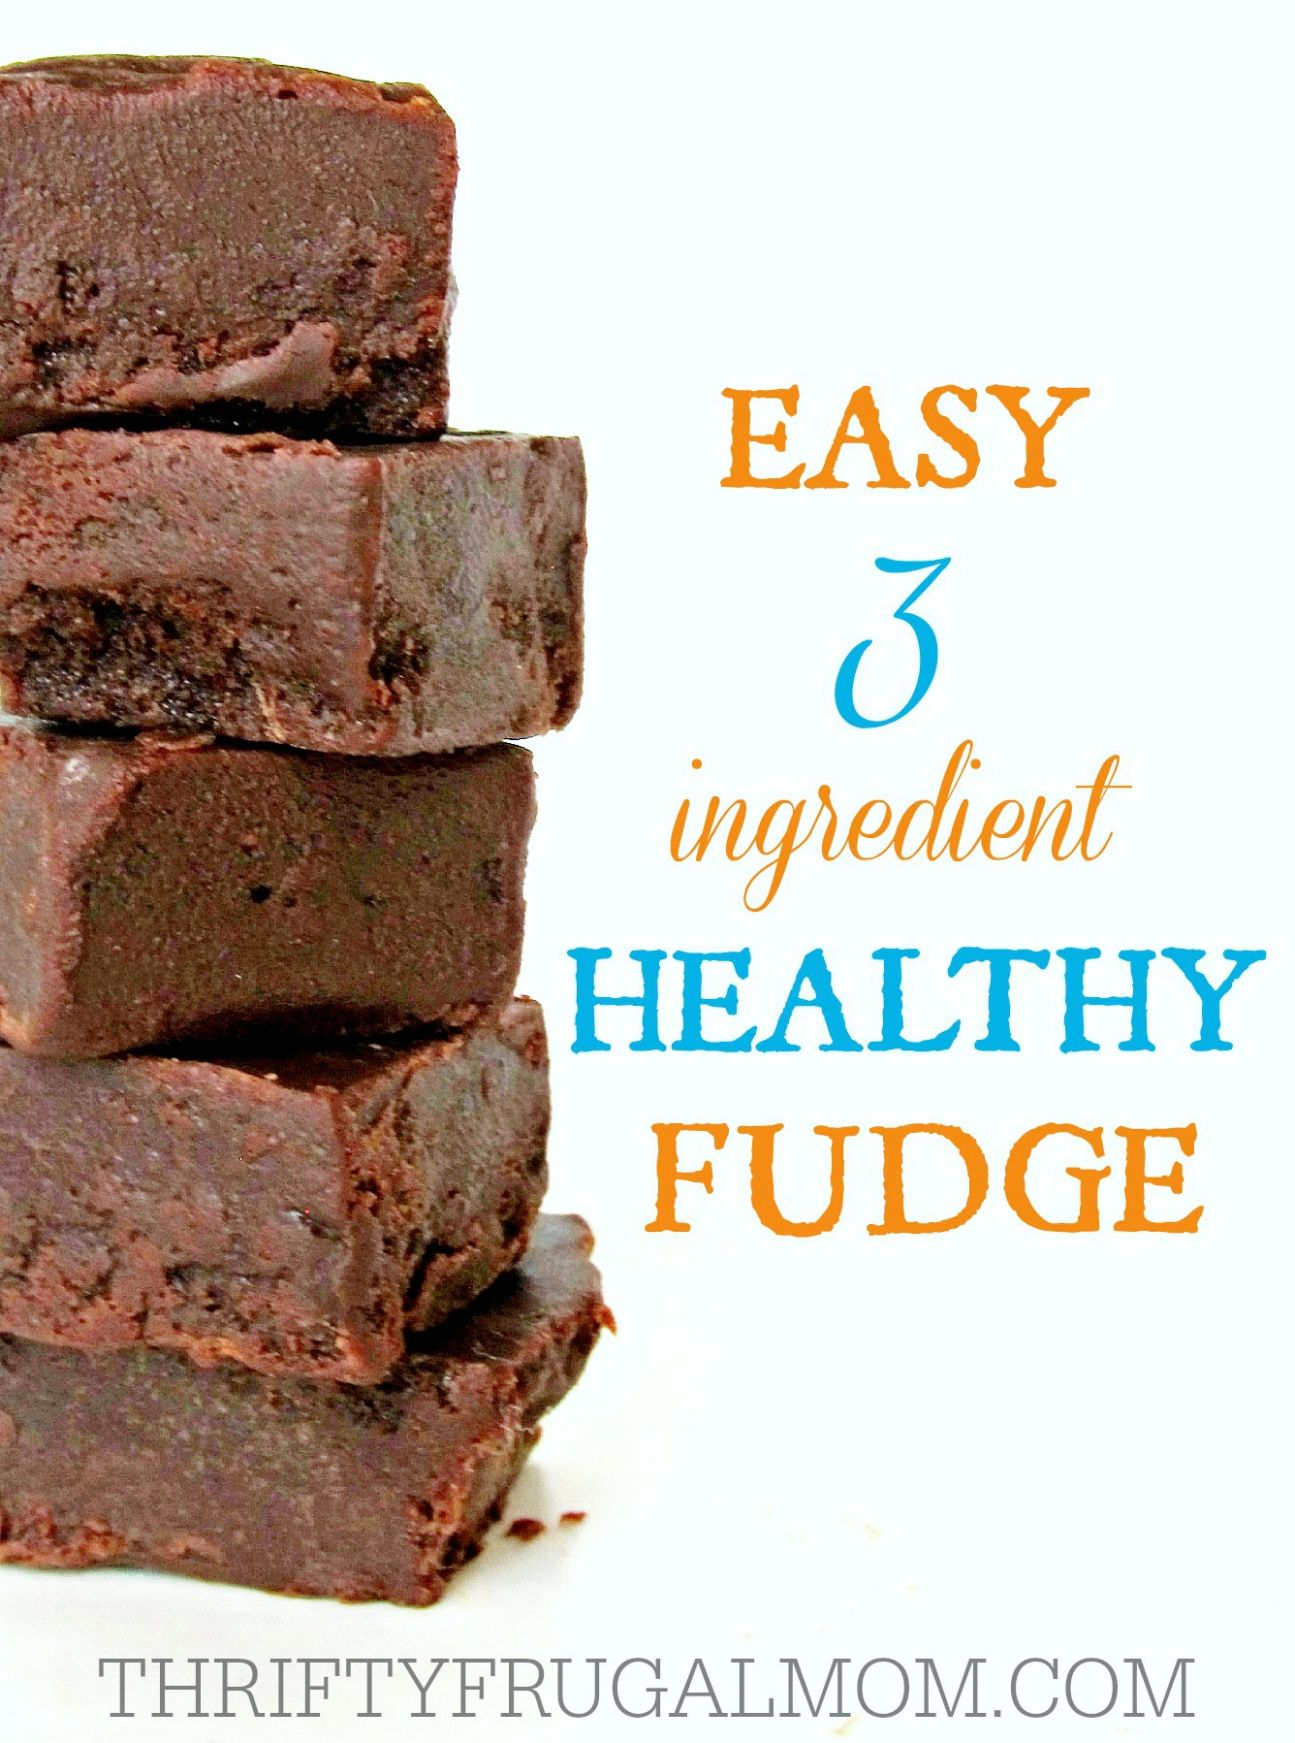 Easy 10 Ingredient Healthy Fudge - Easy Recipes Cocoa Powder